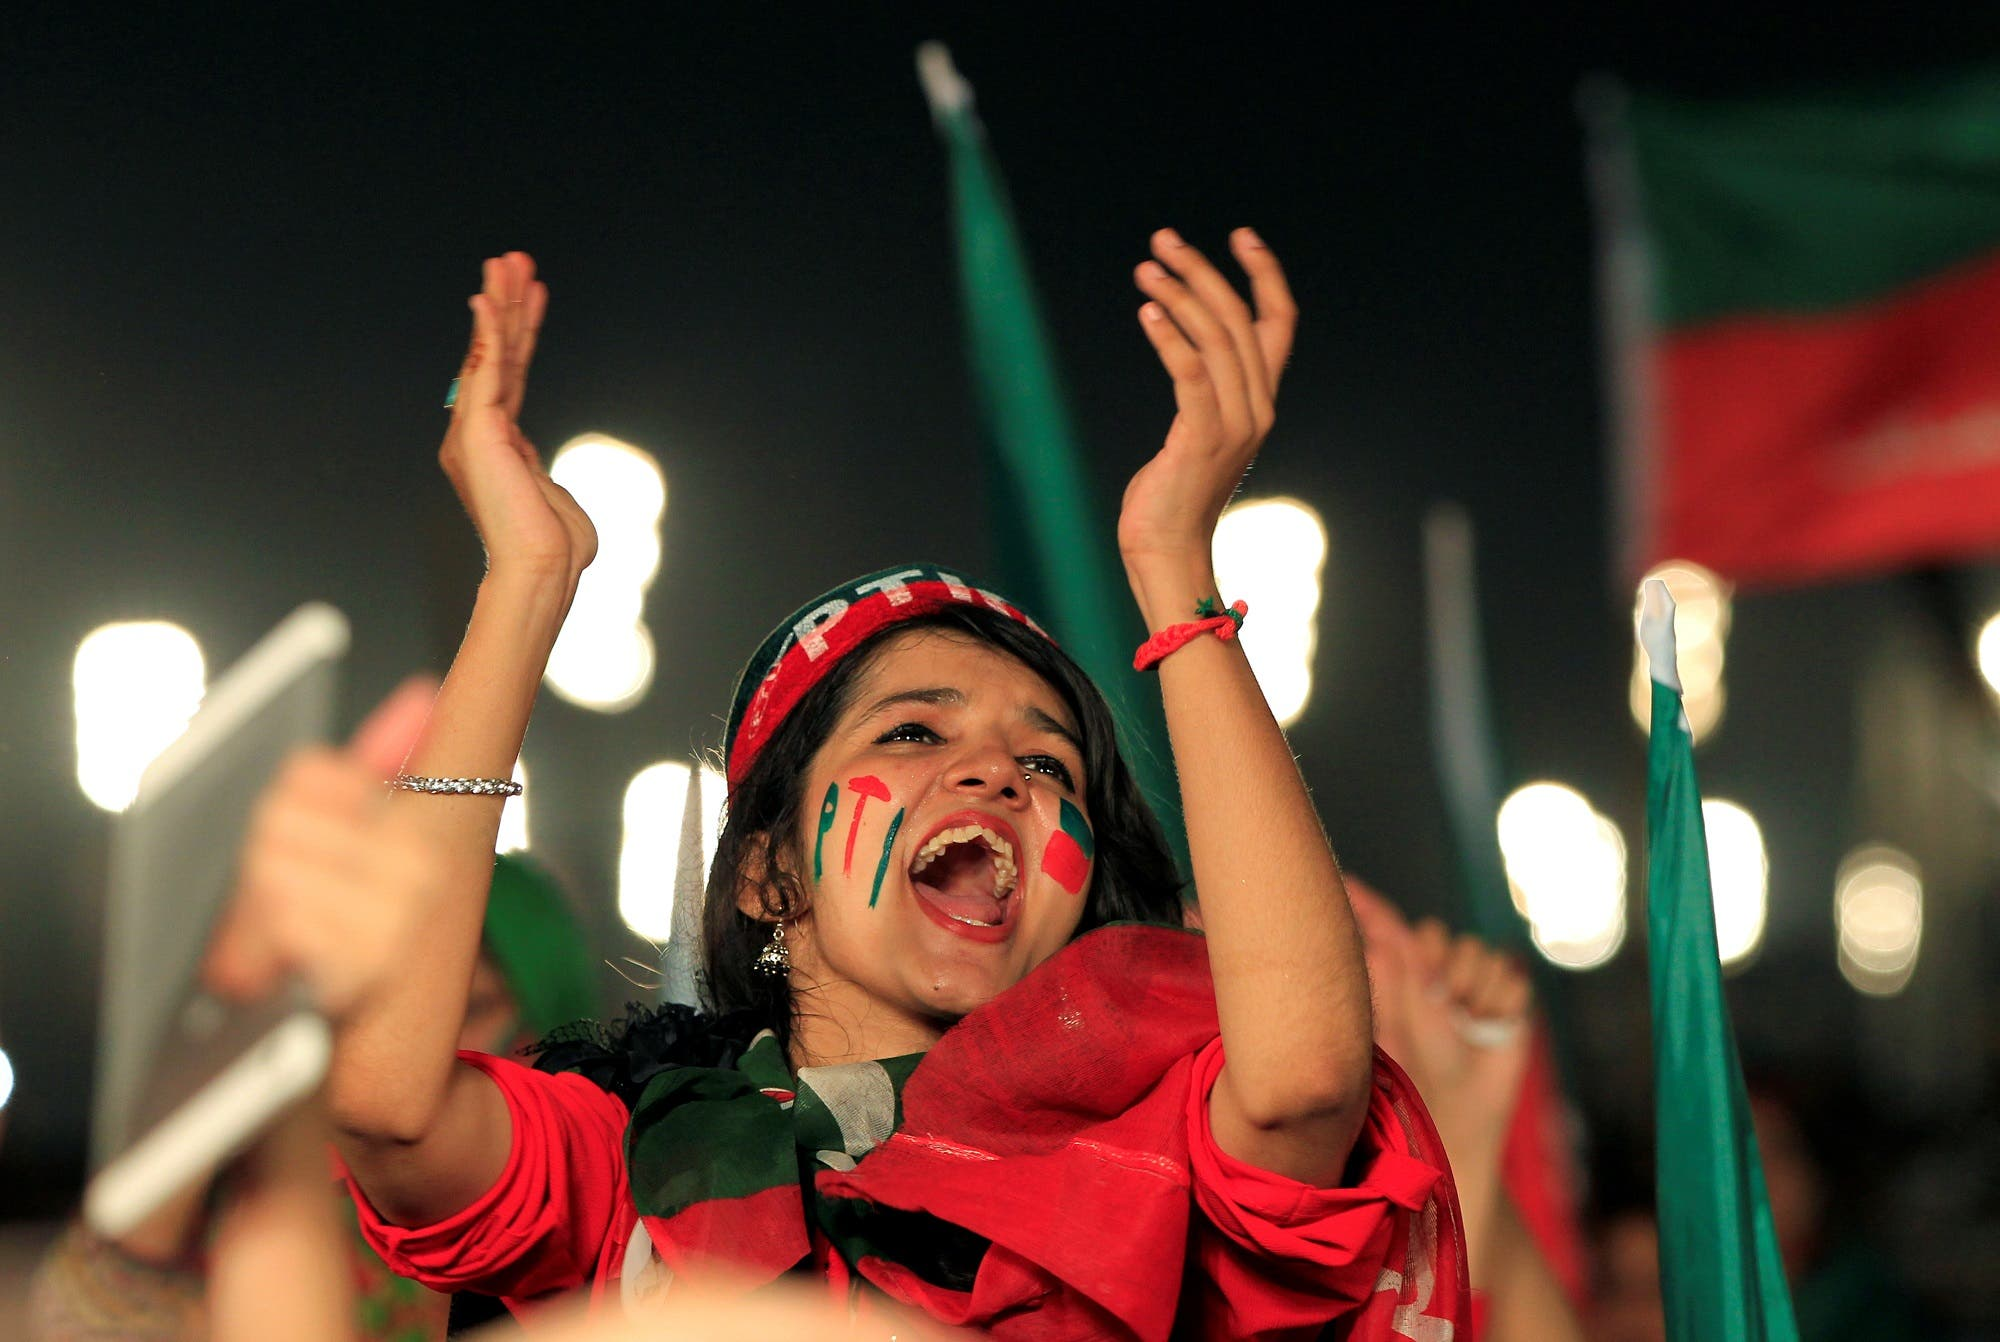 Supporters of Imran Khan cheer to celebrate the Supreme Court decision to oust the Prime Minister Nawaz Sharif during a rally in Islamabad on July 30, 2017. (Reuters)